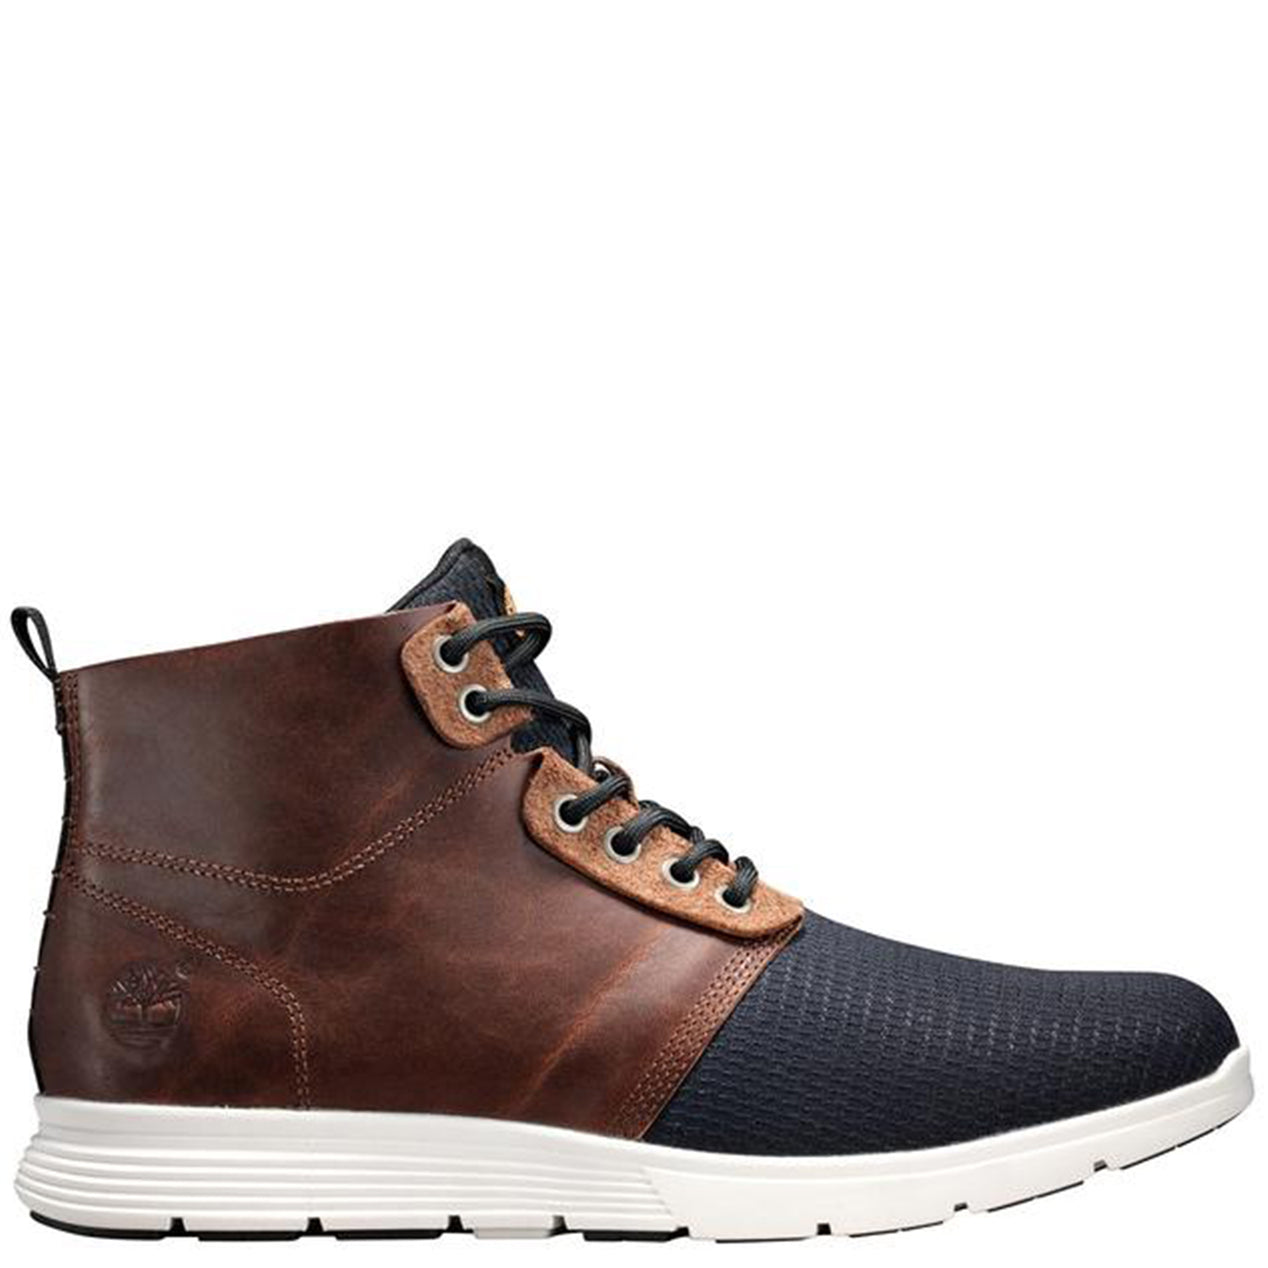 33dbe988bf Timberland Men's Killington Chukka Shoes | Altitude Sports